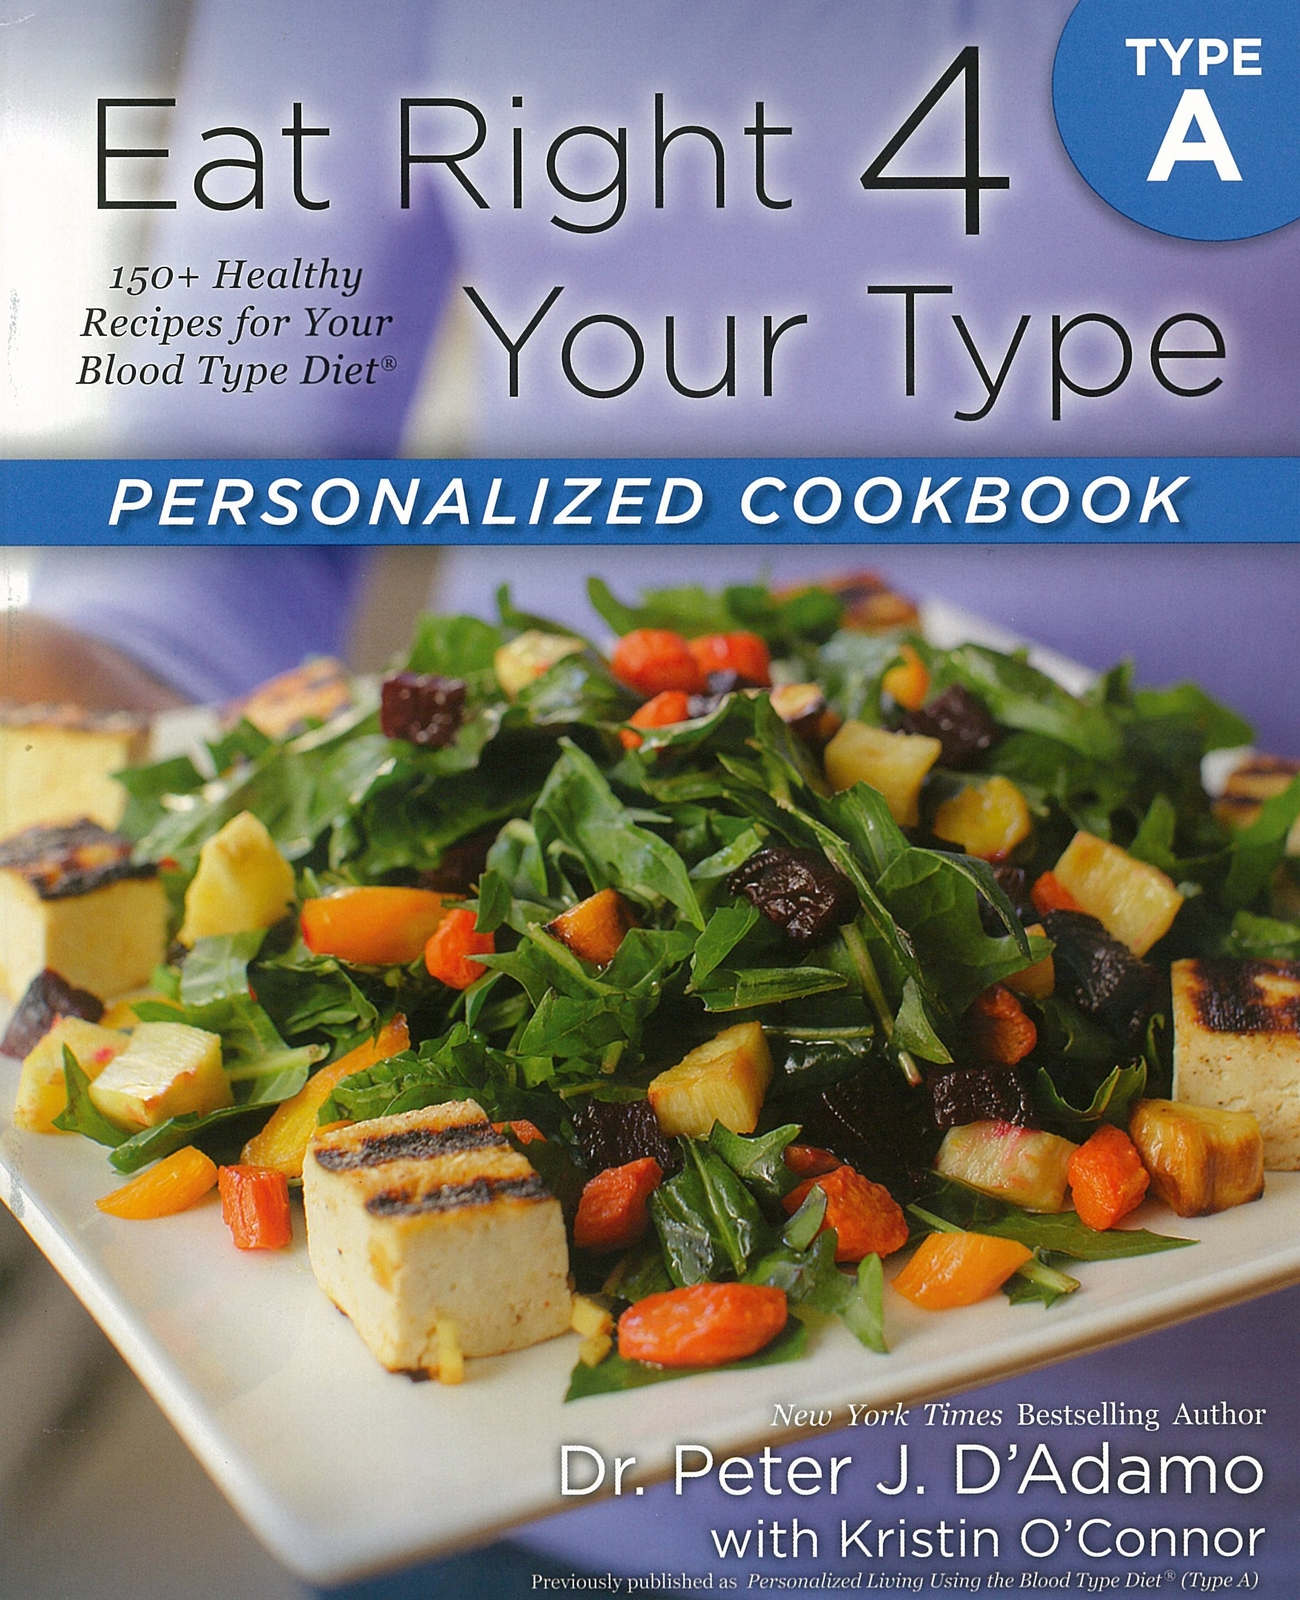 Eat Right 4 Your Type Personalized Cookbook Type a by Peter J D'Adamo image